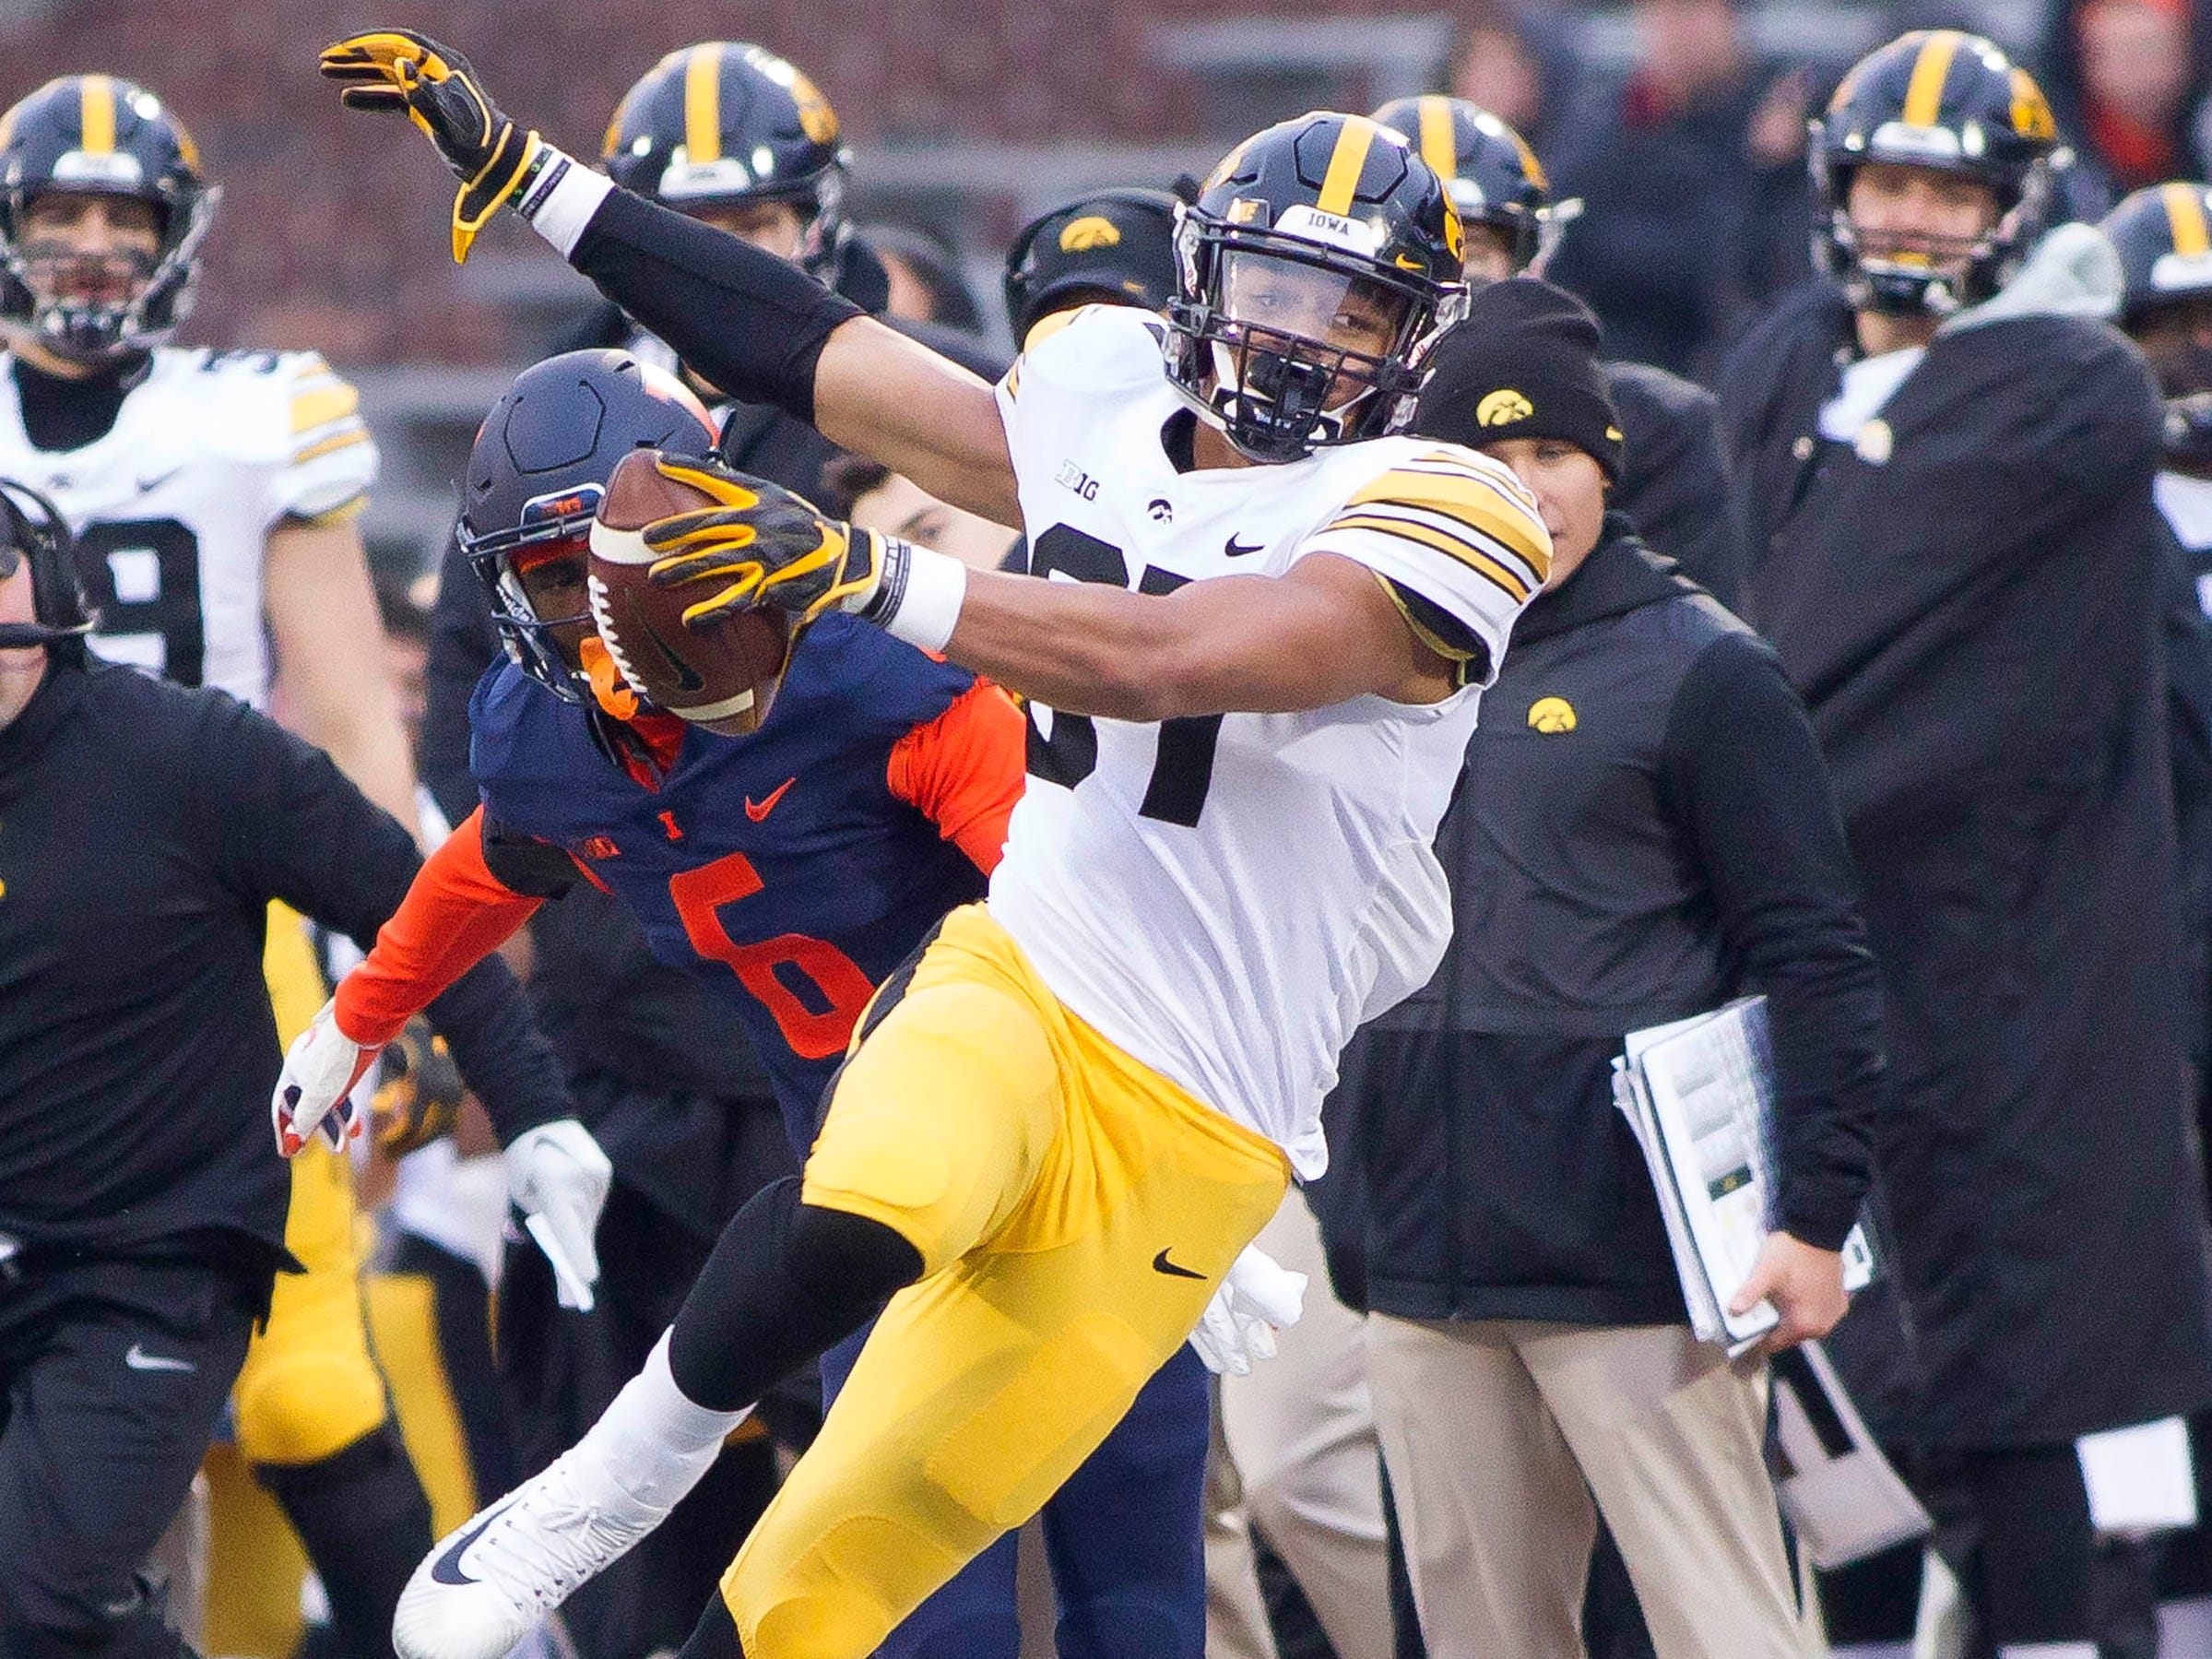 Iowa tight end Noah Fant is pushed out of bounds by Illinois defensive back Tony Adams during their game this season.